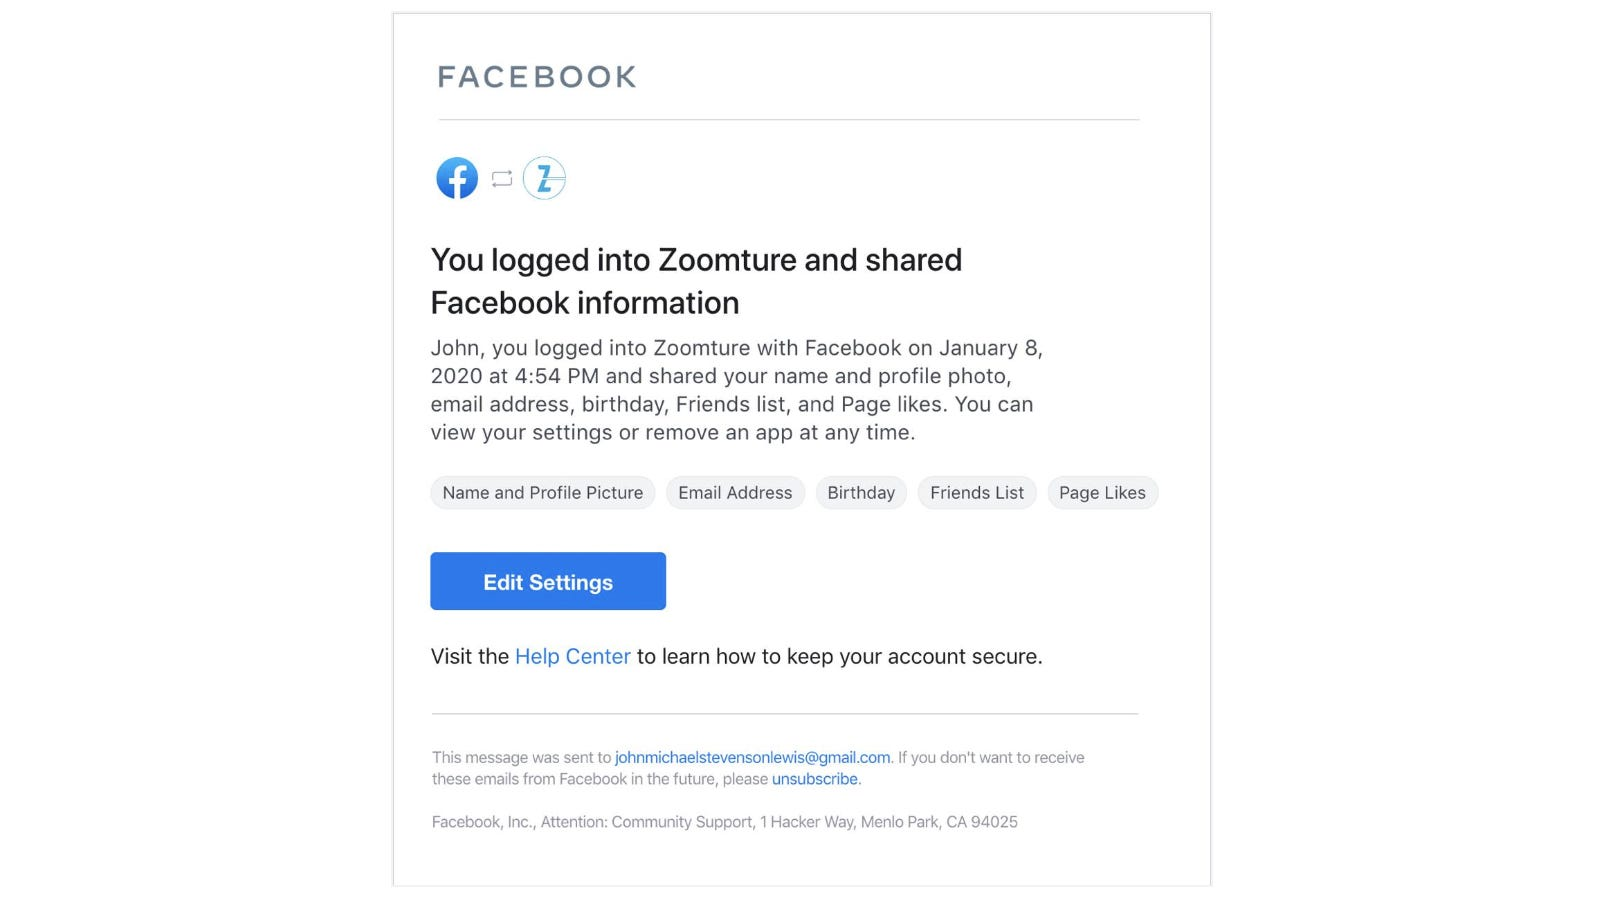 Sample notification from Facebook feature Login Notifications